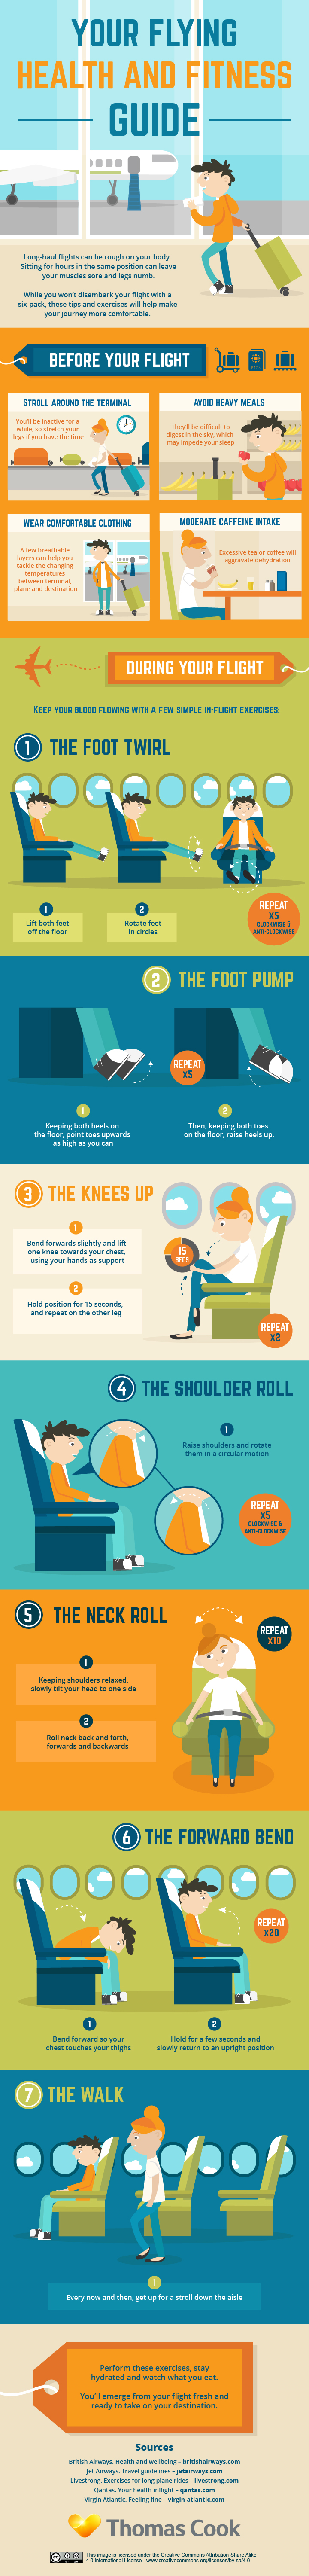 Your Ultimate Guide to Being Flying Fit and Beating Jet-lag - Infographic